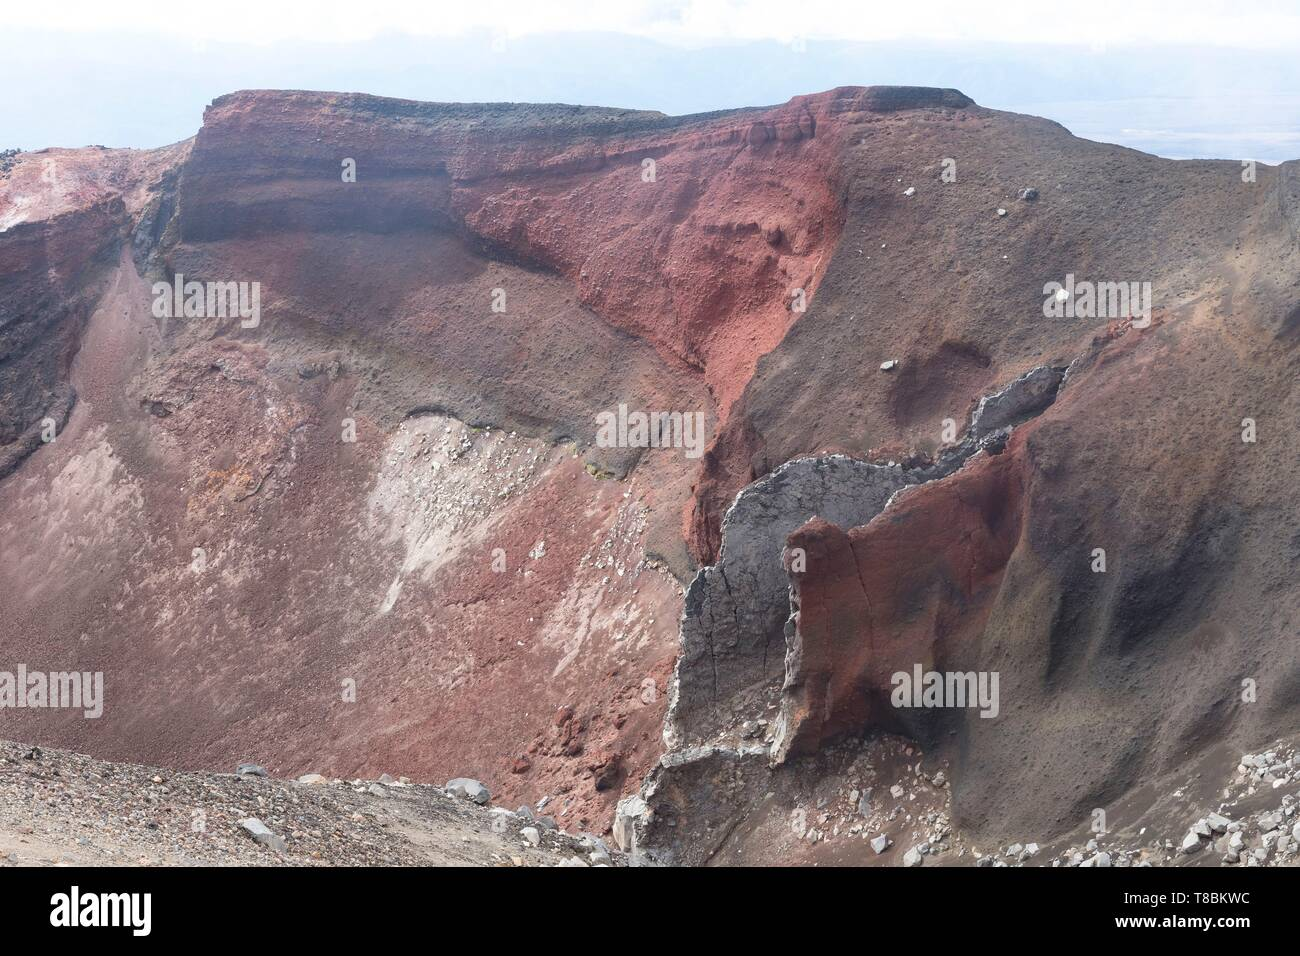 New Zealand, North Island, Waikato region, Tongariro National Park, 1967 m, labelled Unesco World Heritage Site, Tongariro Alpine crossing, Tongariro volcano crater - Stock Image